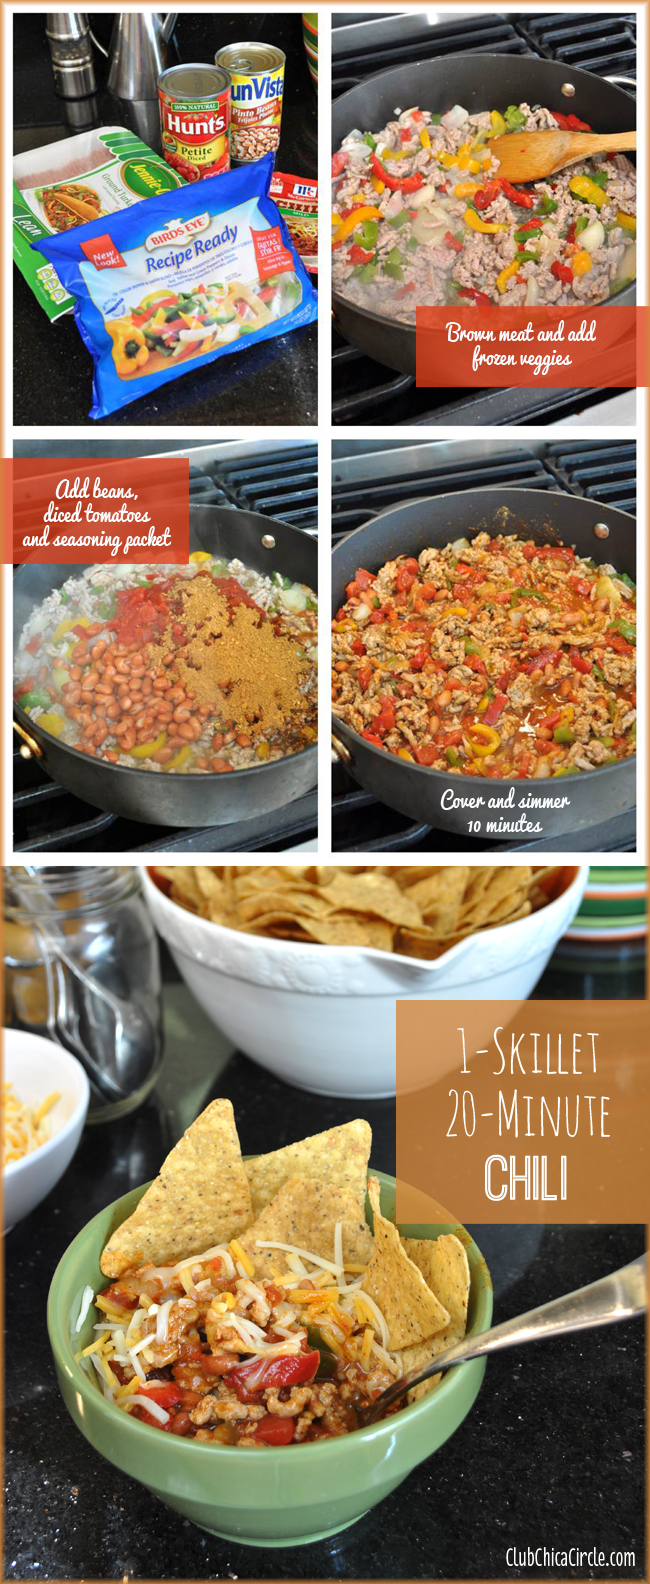 1-Skillet 20-Minute Easy Turkey Chili Recipe Idea